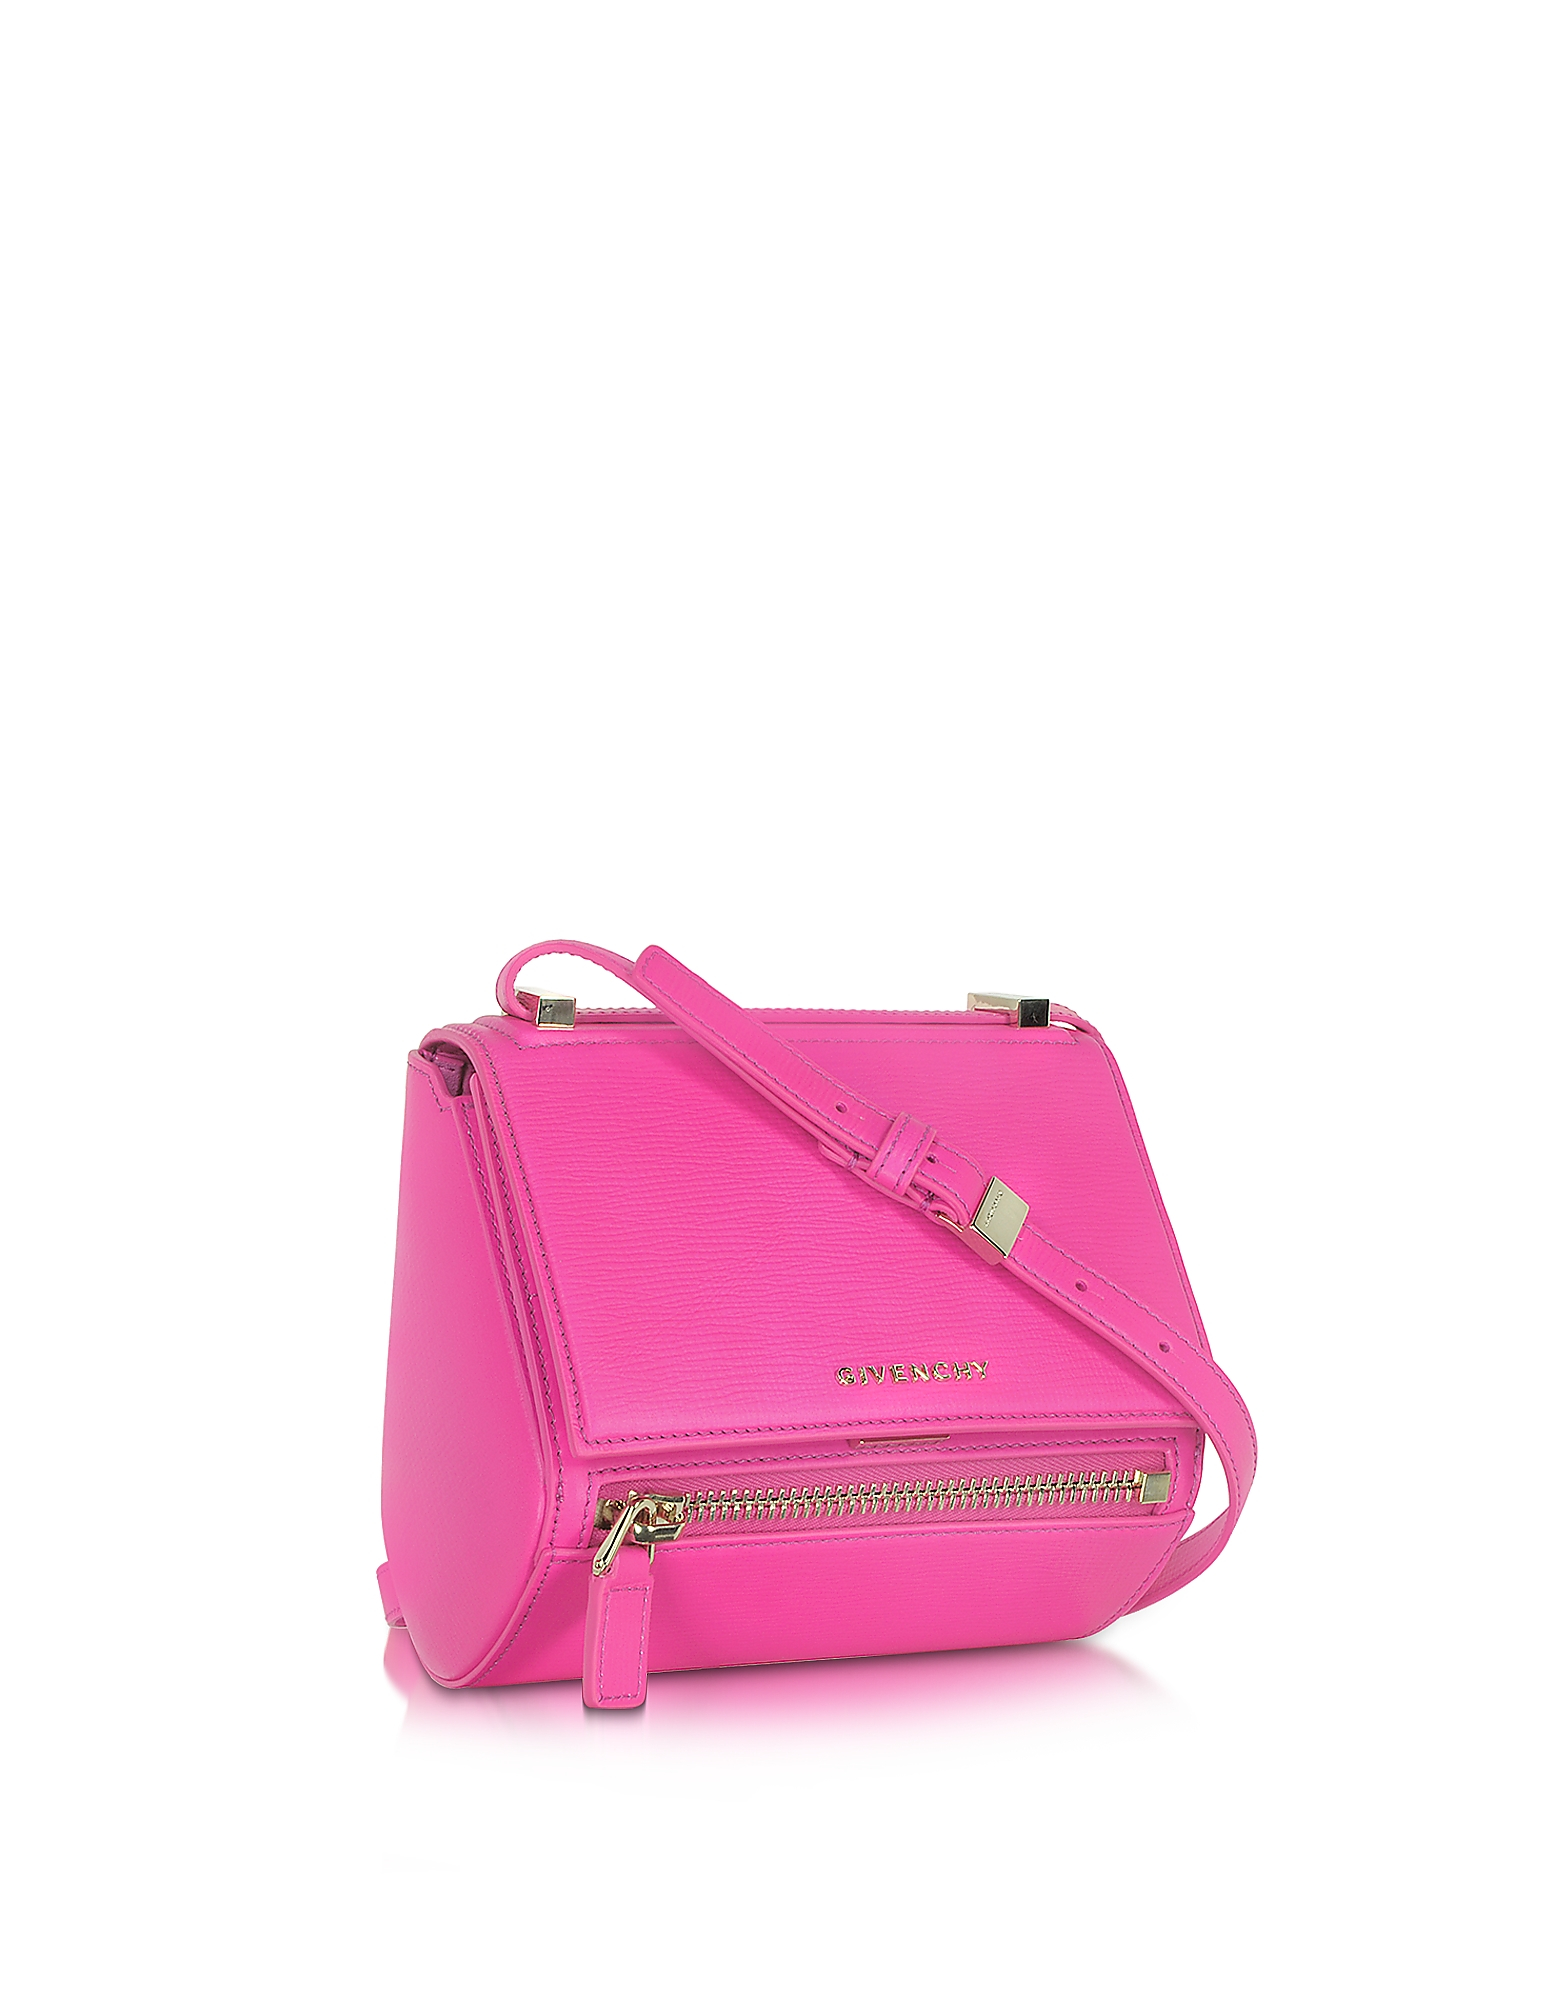 b7ee21c43f0bf Lyst - Givenchy Pandora Shocking Pink Leather Mini Box Bag in Pink